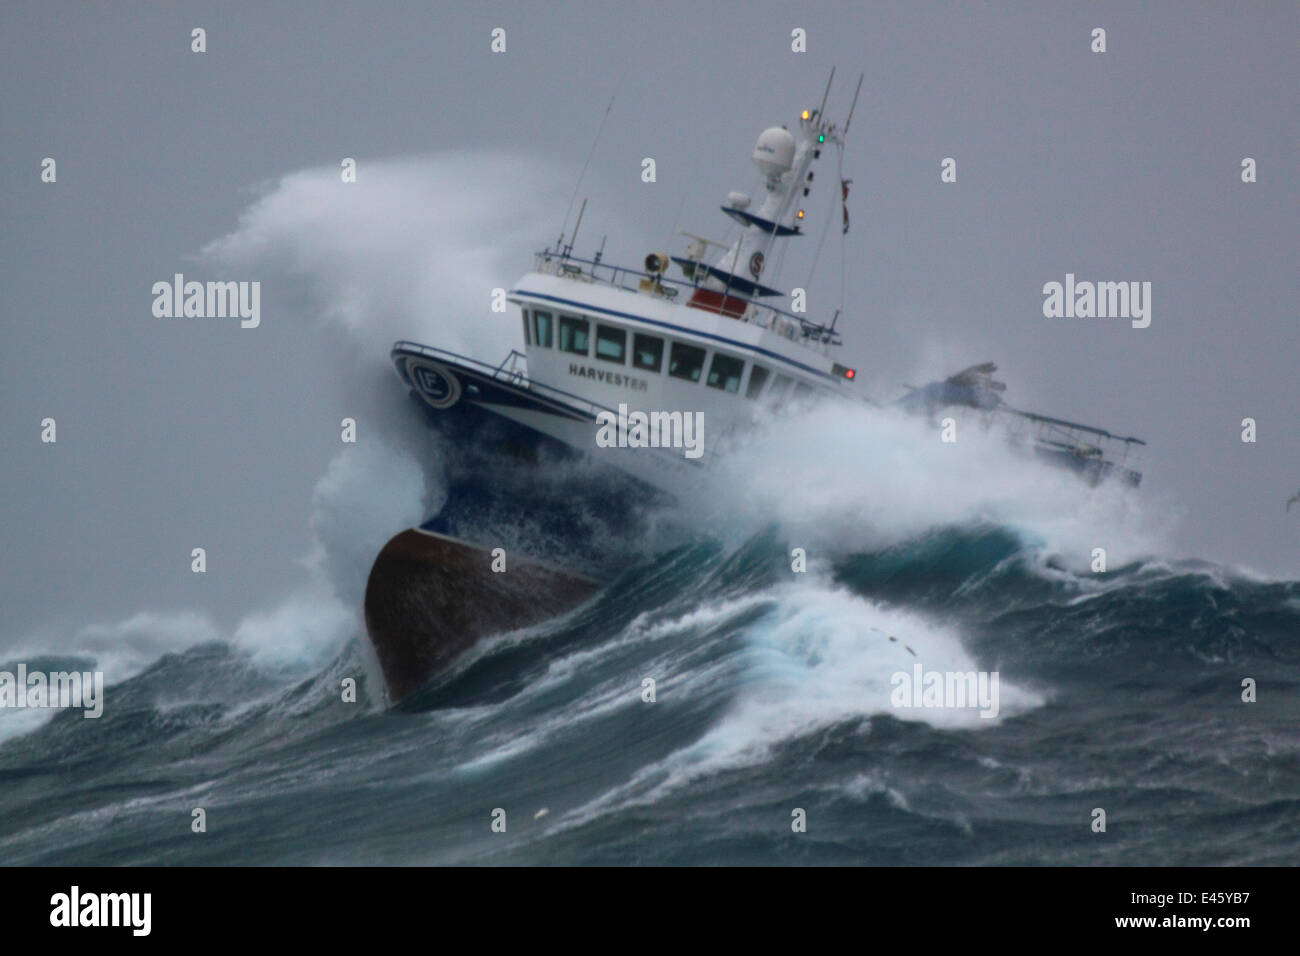 How Heavy Are the Biggest Waves in the Ocean? | HuffPost